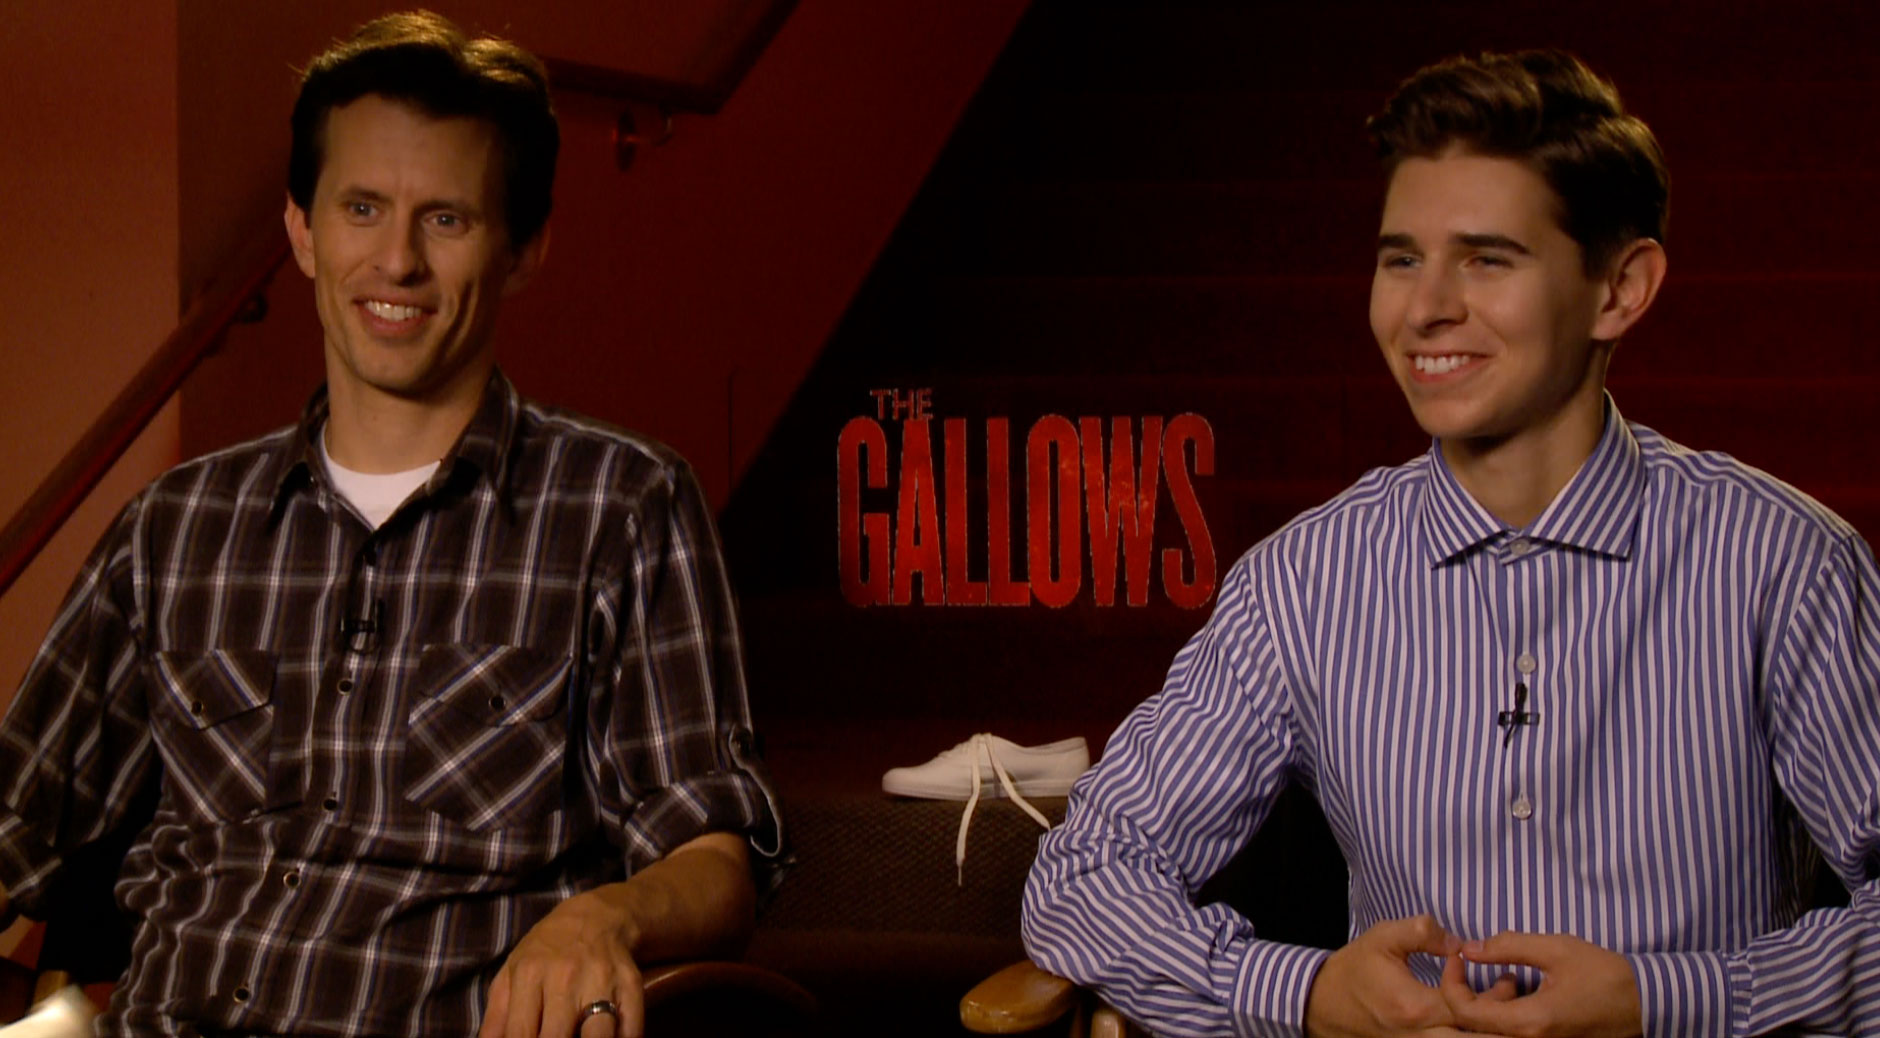 the gallows travis cluff chris lofing interview